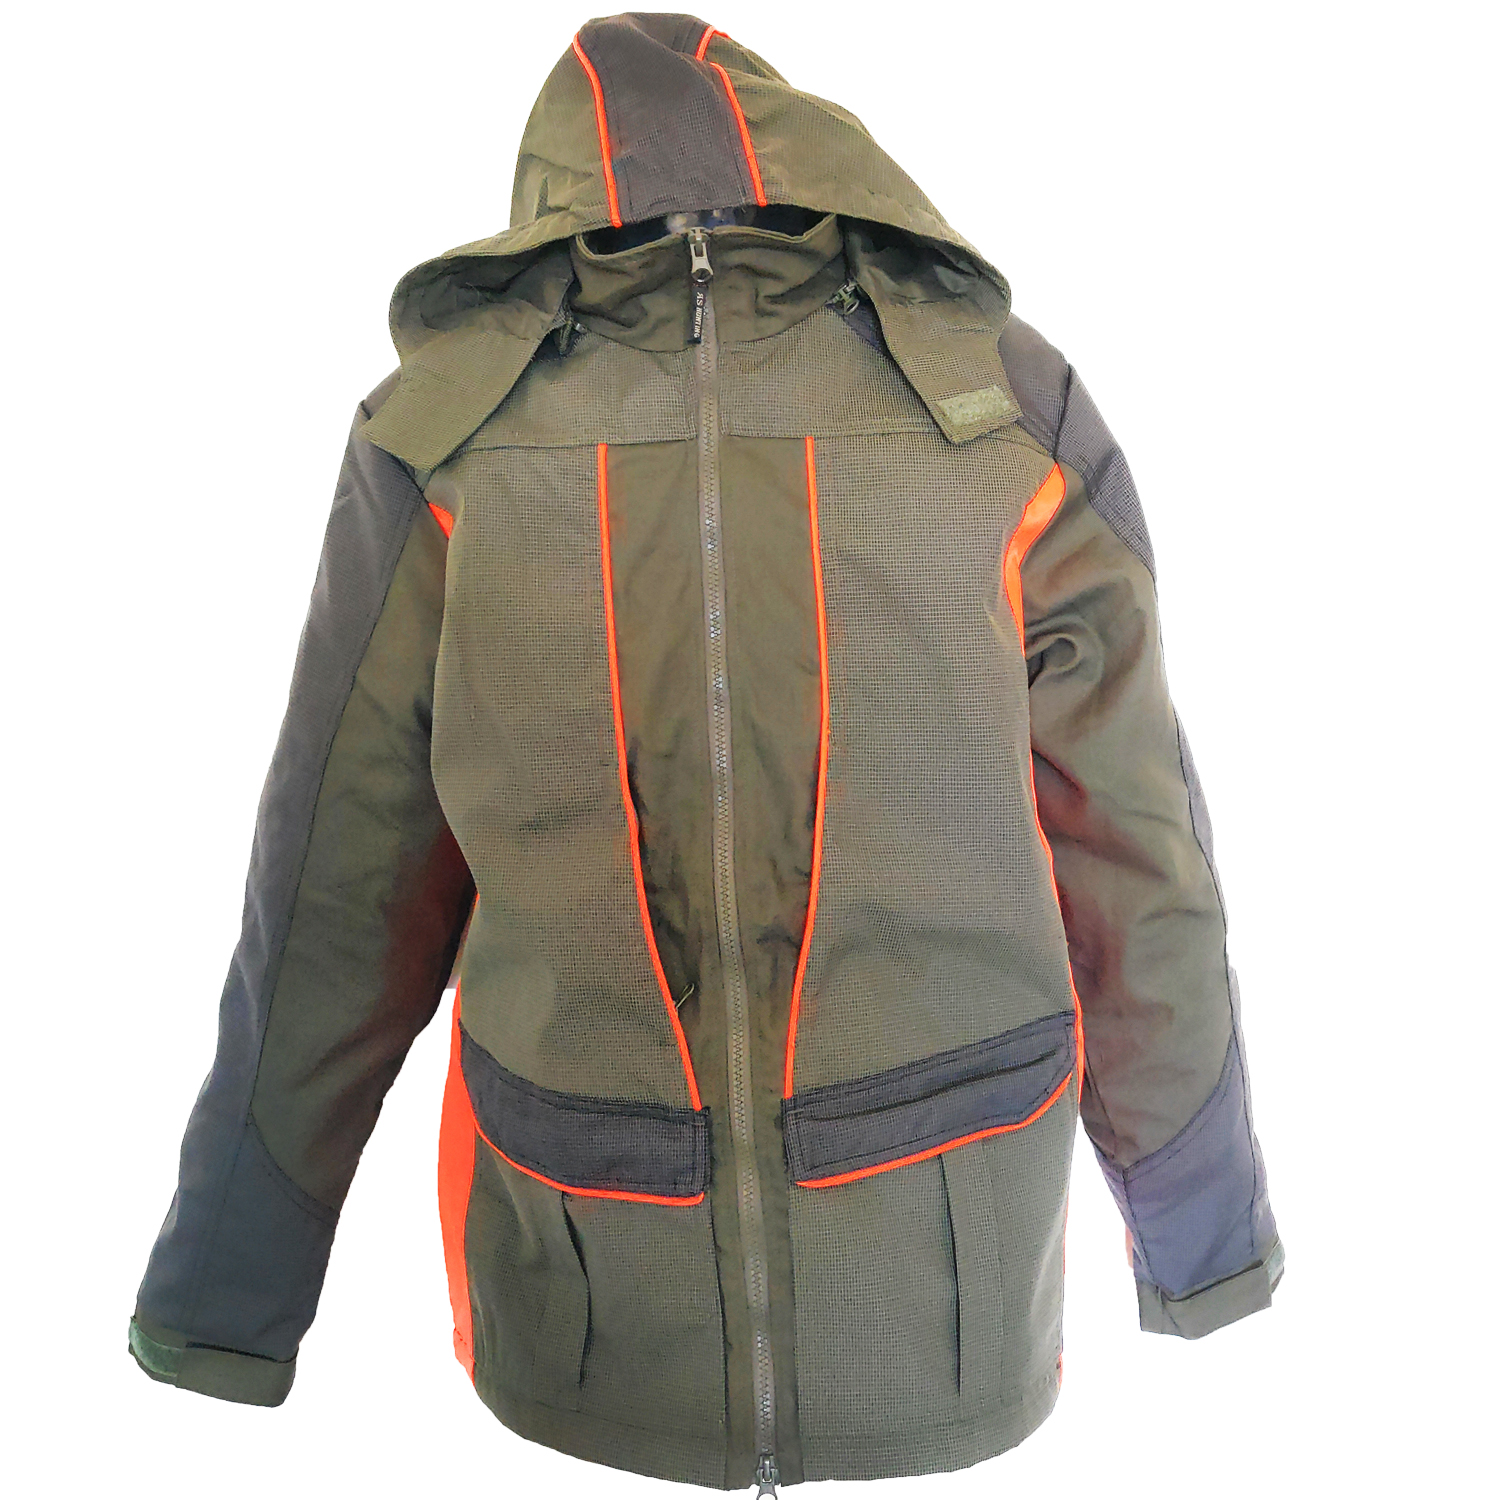 Jacket jacket Kevlar canvas orange hood high visibility man